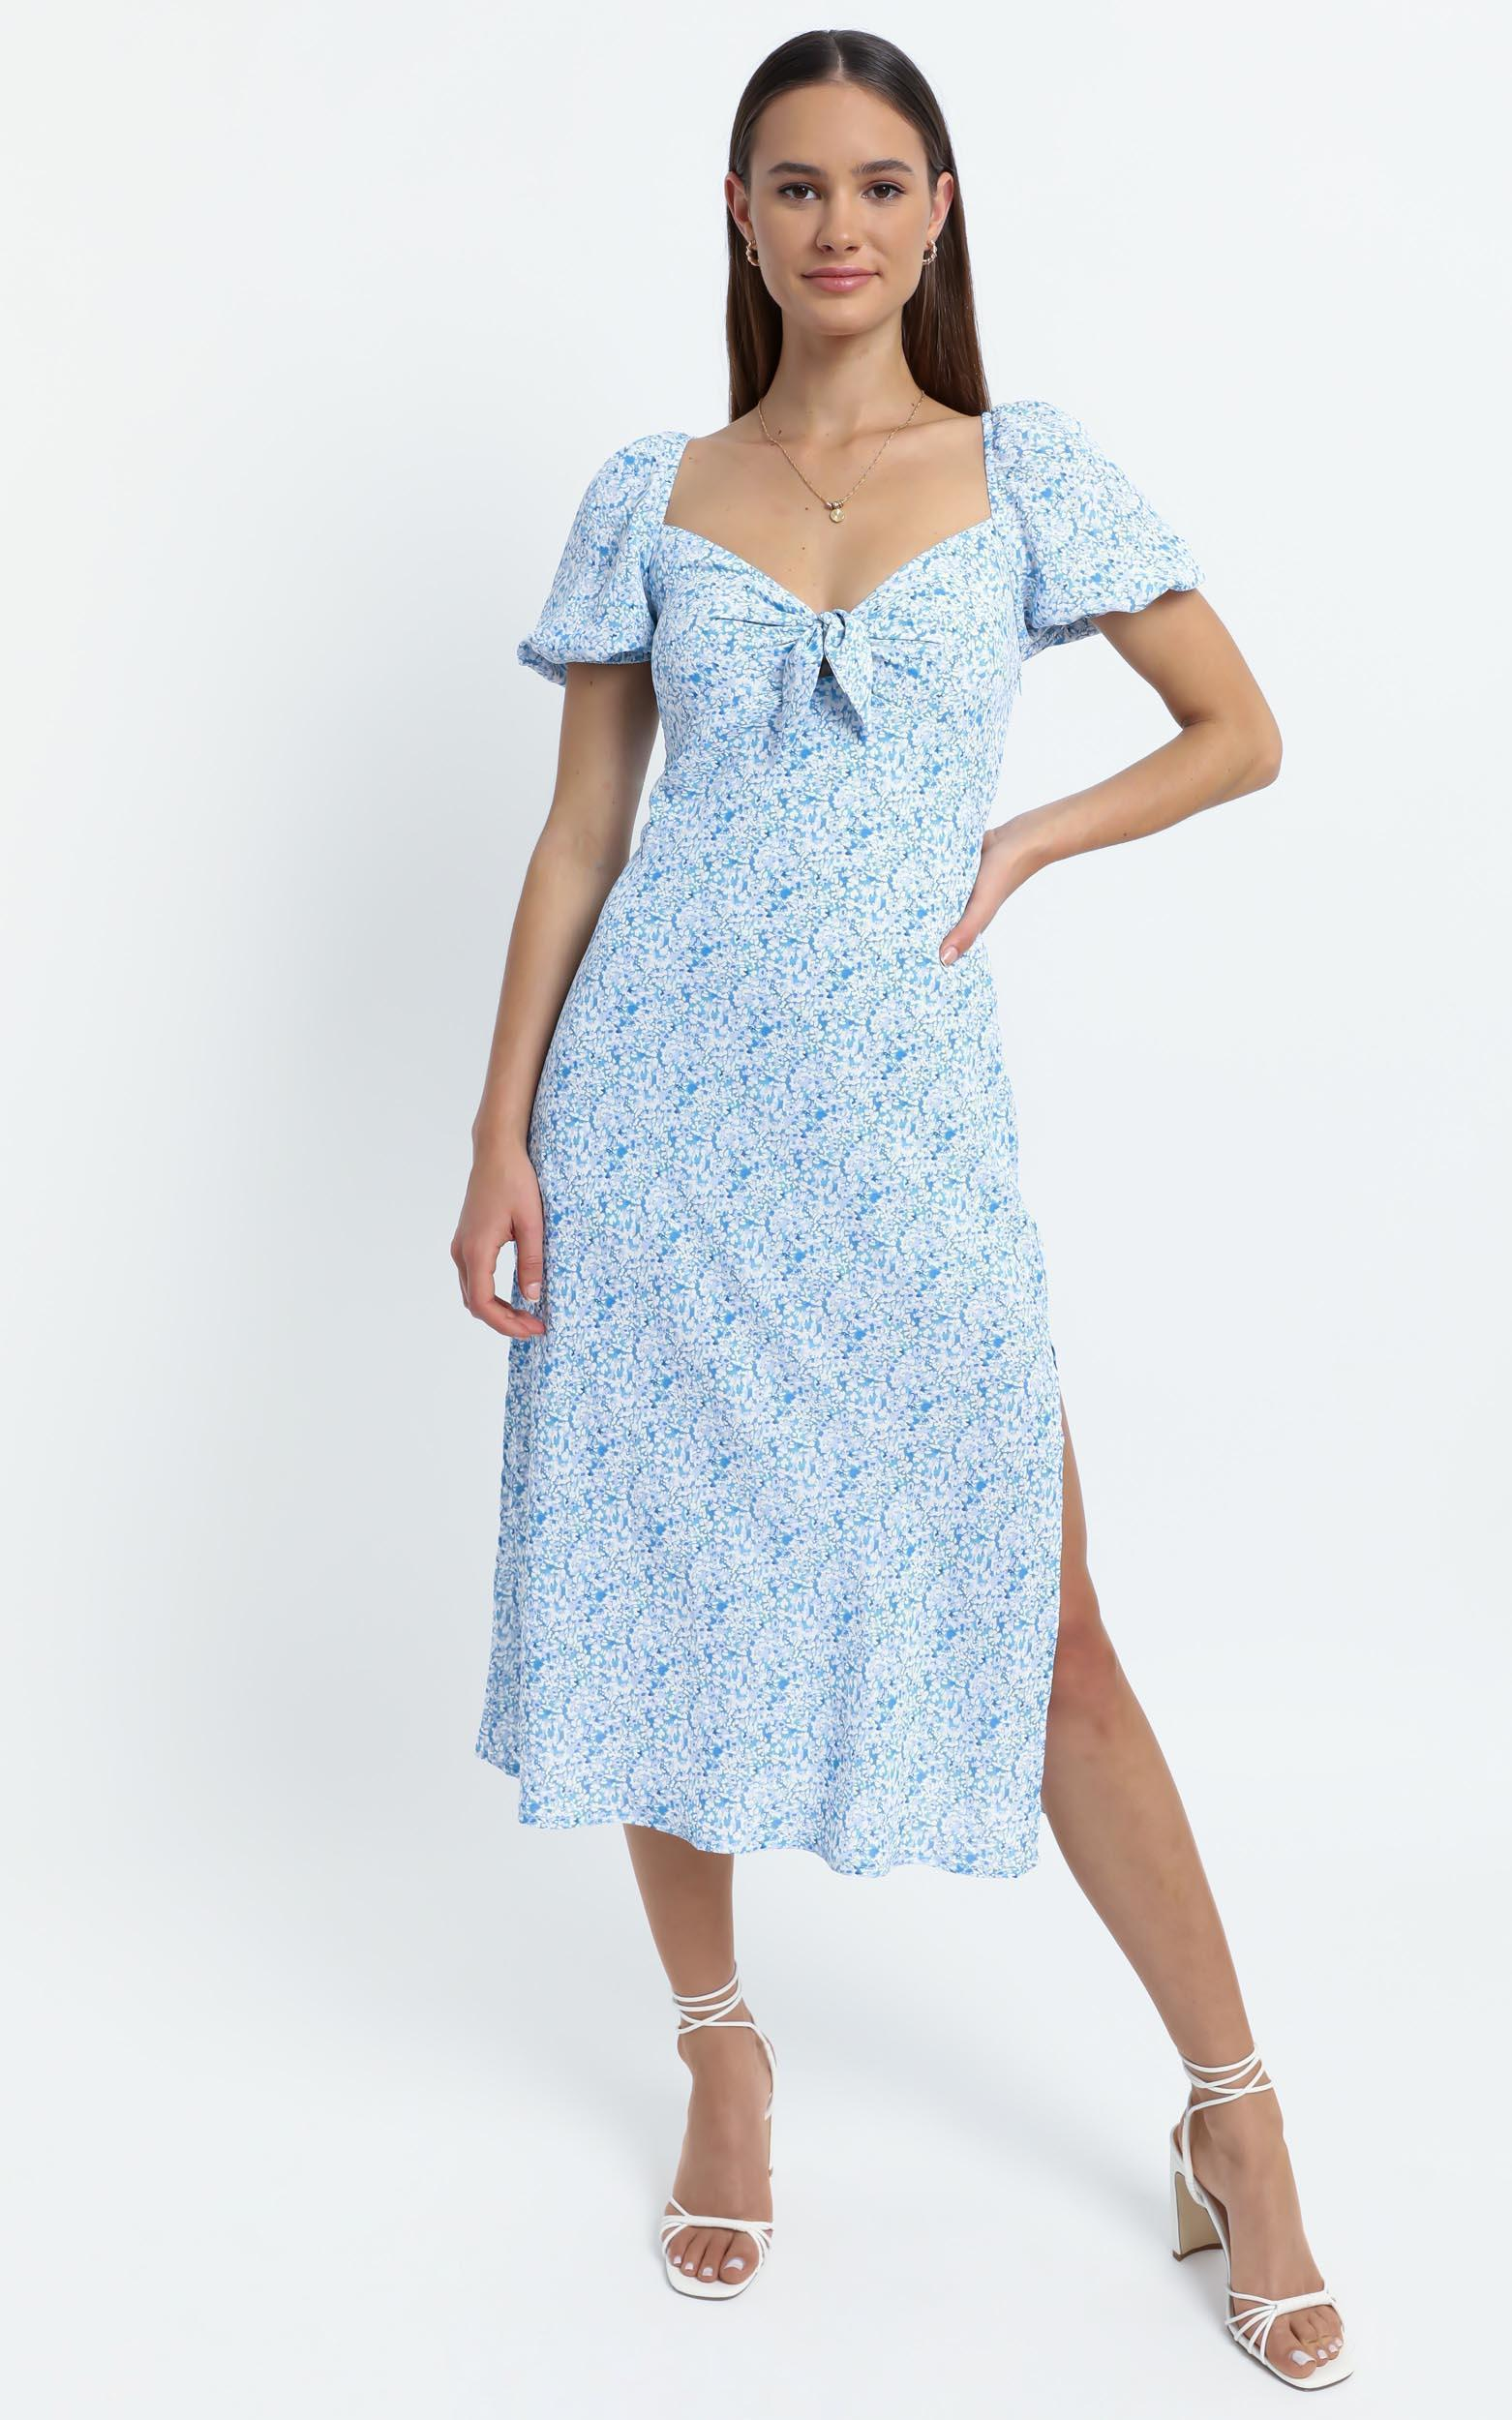 Brady Dress in Blue Floral - 6 (XS), Blue, hi-res image number null